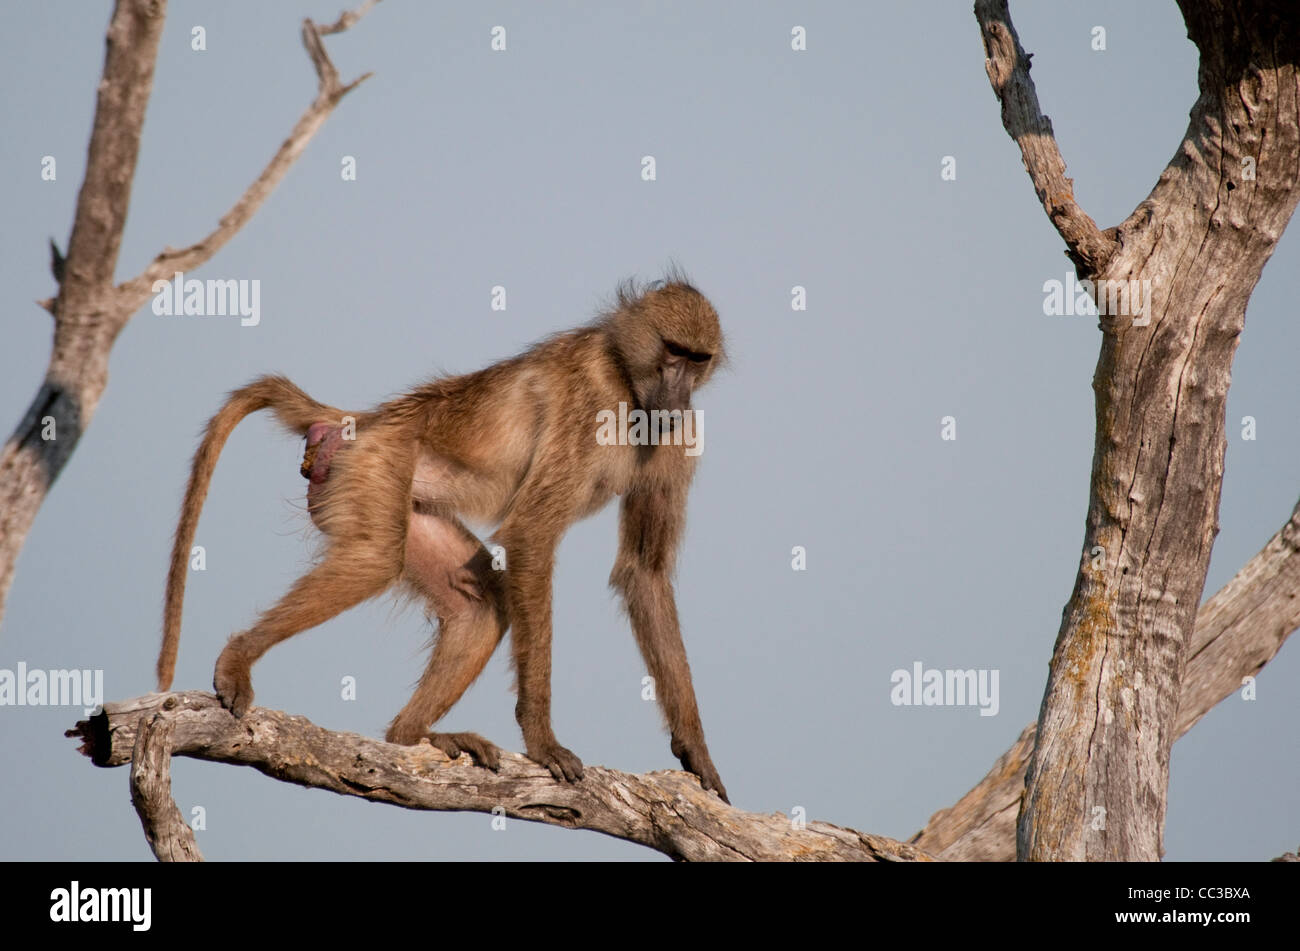 Africa Botswana Tuba Tree-Chacma baboon walking on tree limb (Papio ursinus) Stock Photo